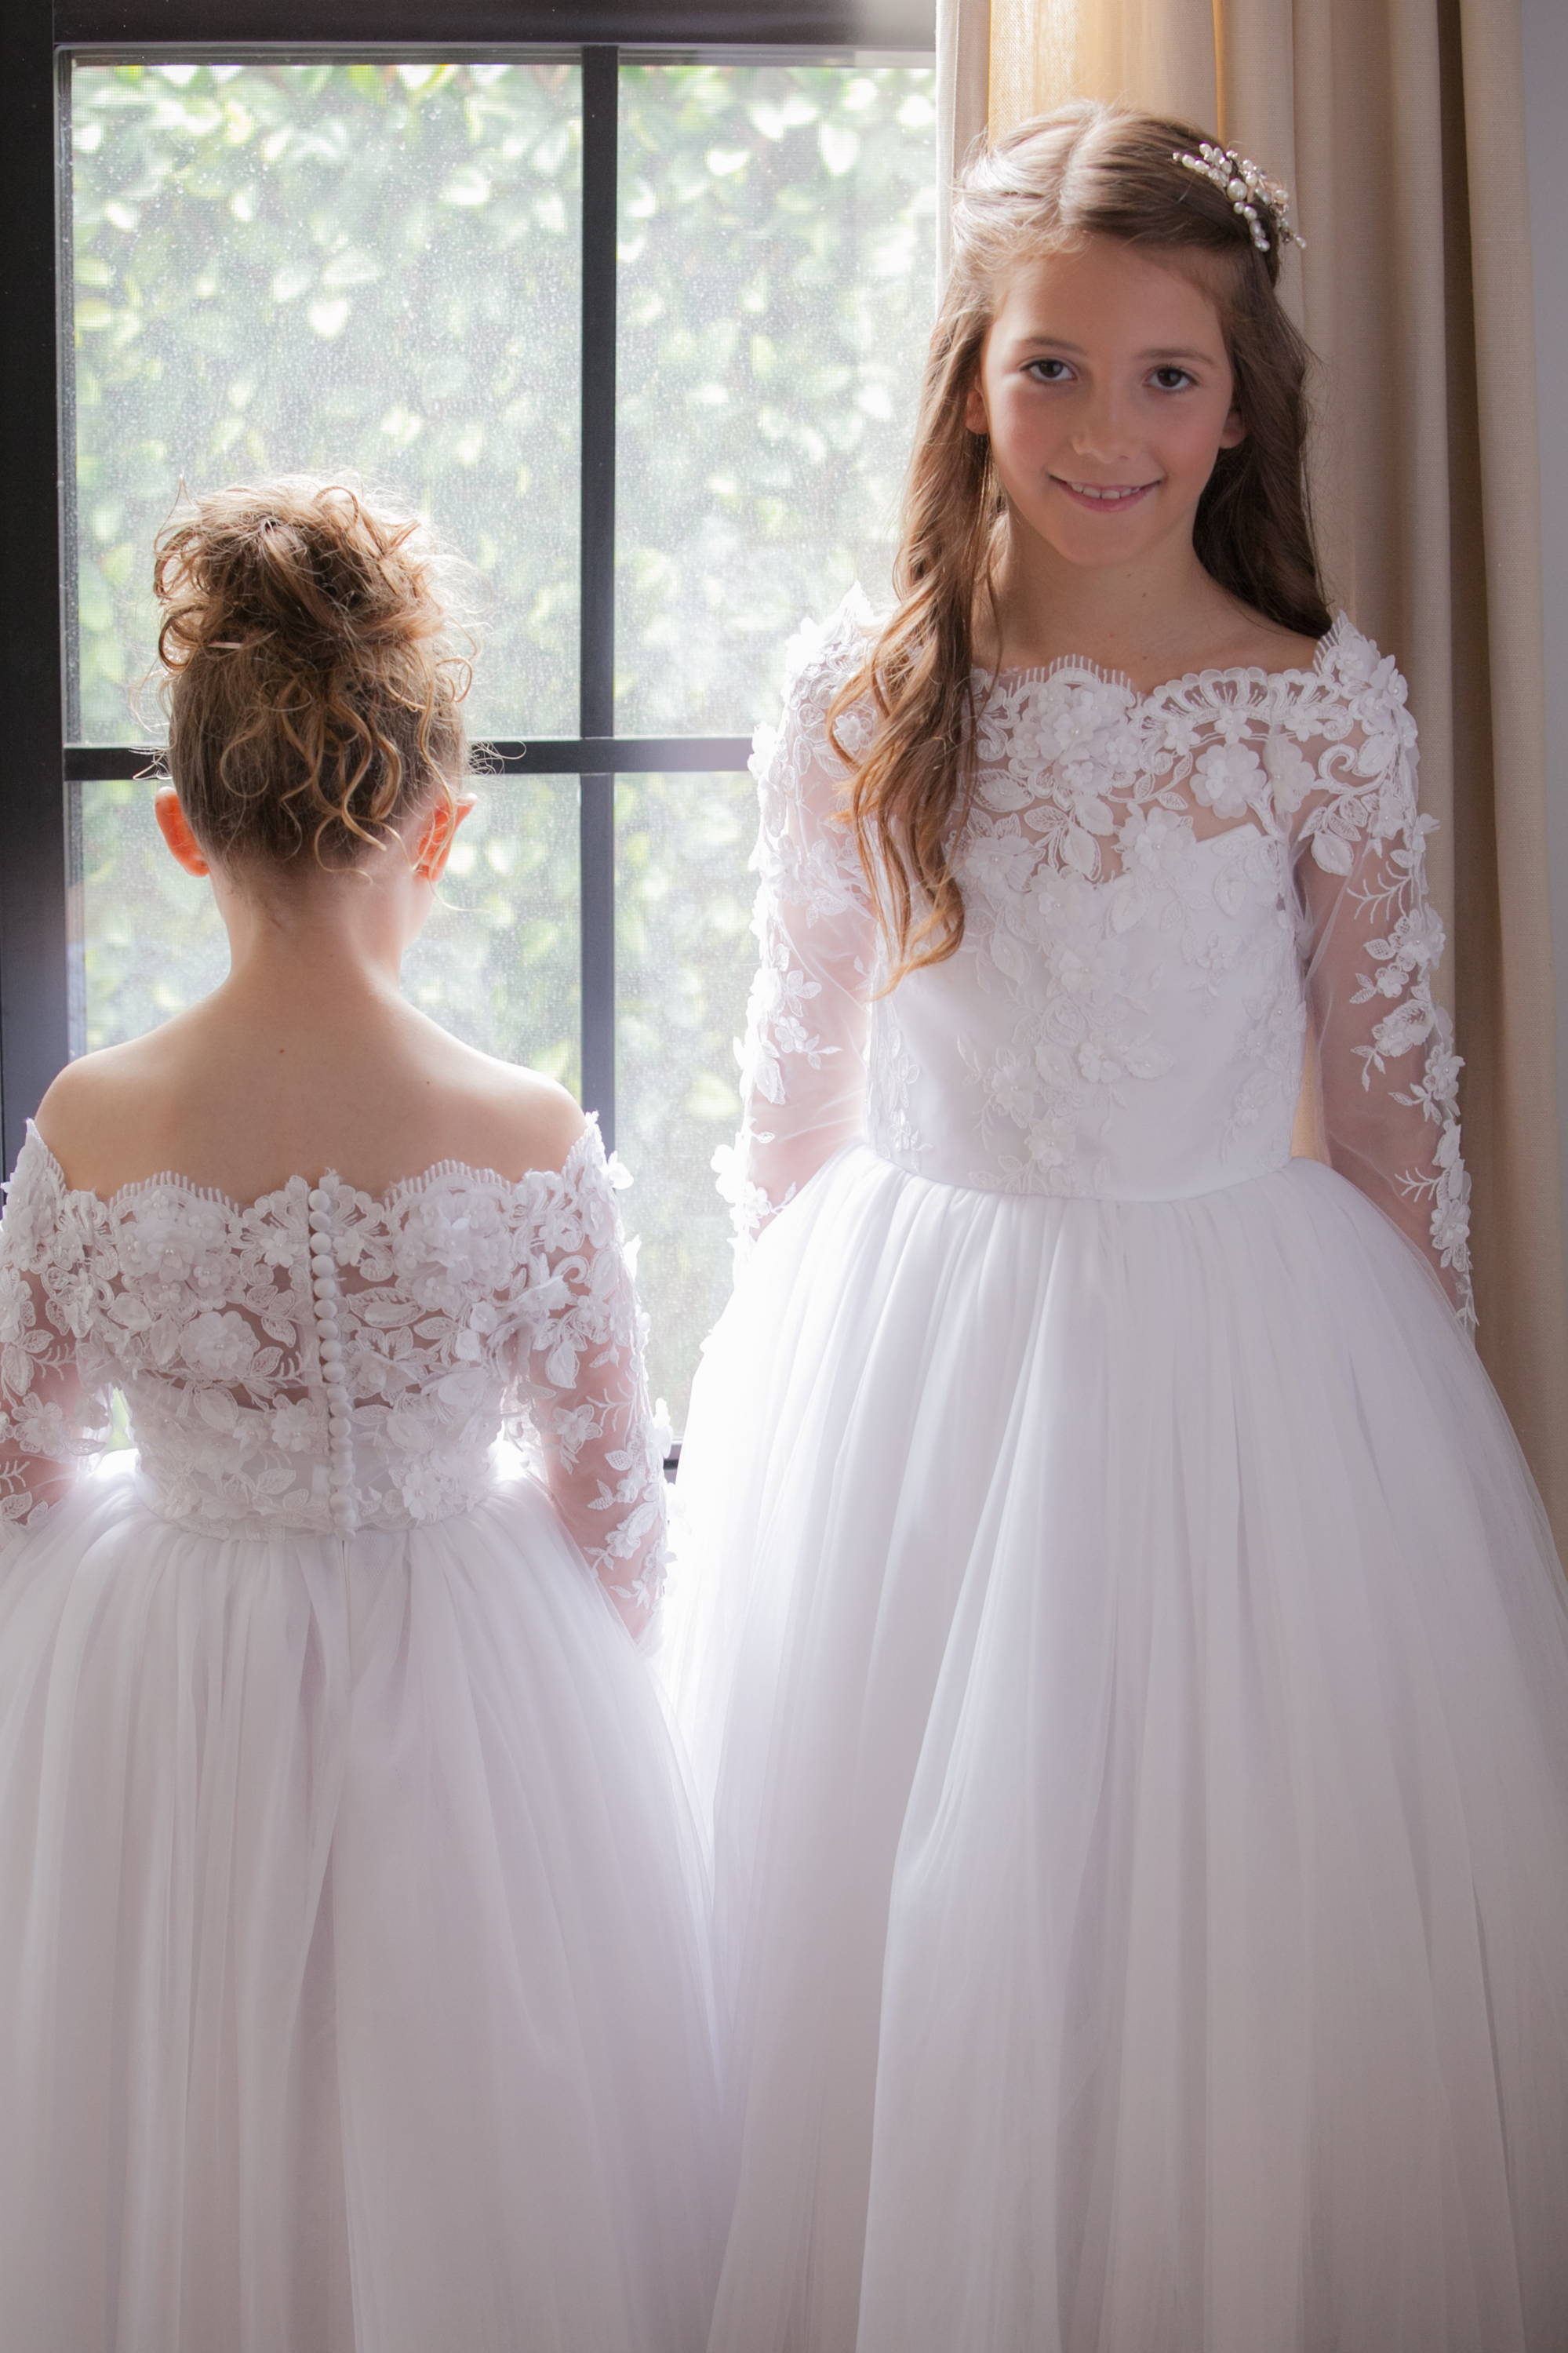 Welcome To Dress The Duchess Flower Girl Dress Hire Australia